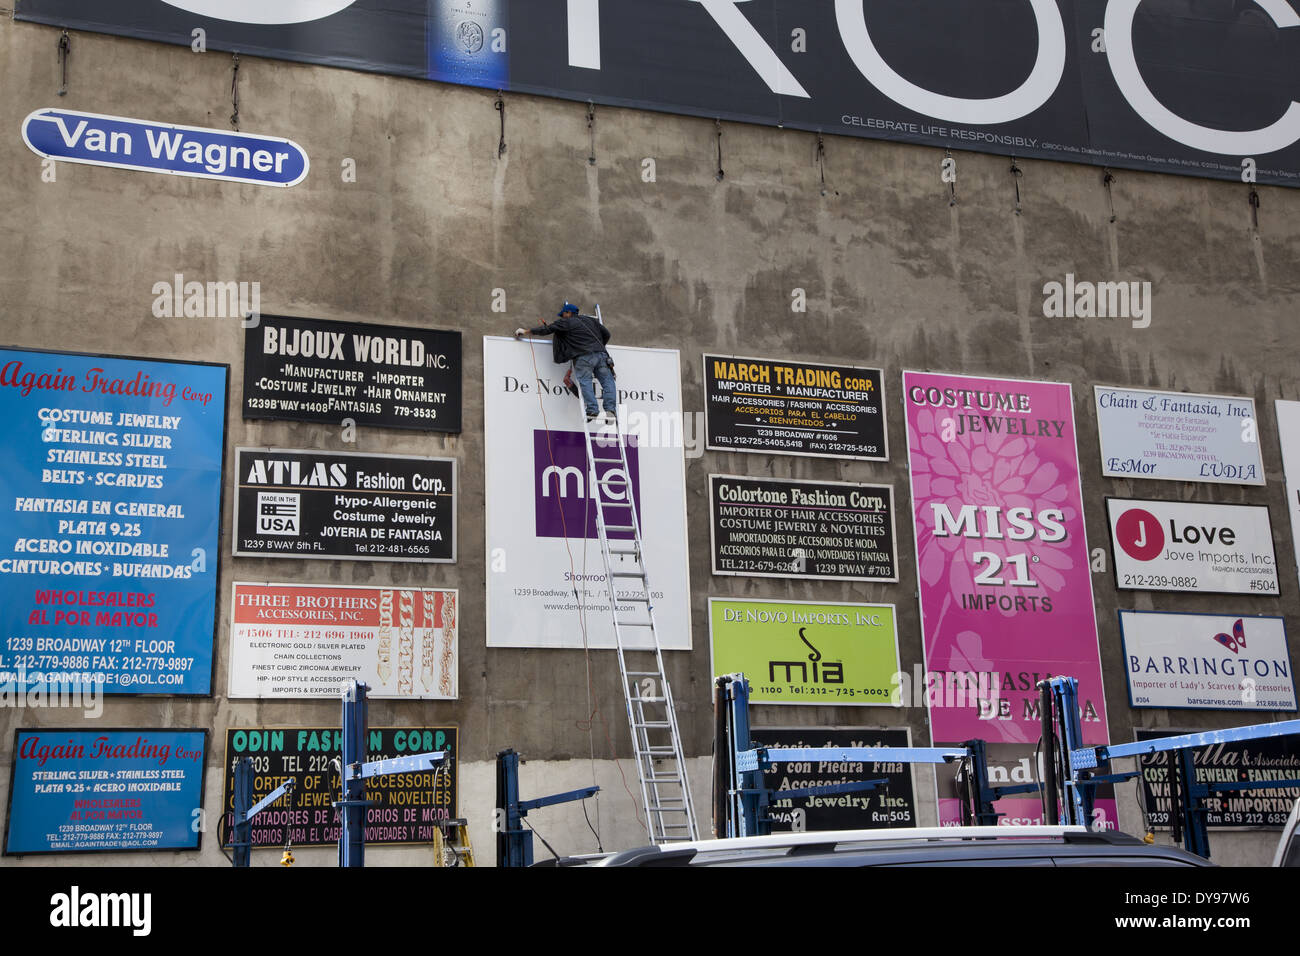 Outdoor Ads on a parking lot wall wall in the fashion district in Manhattan, NYC. - Stock Image